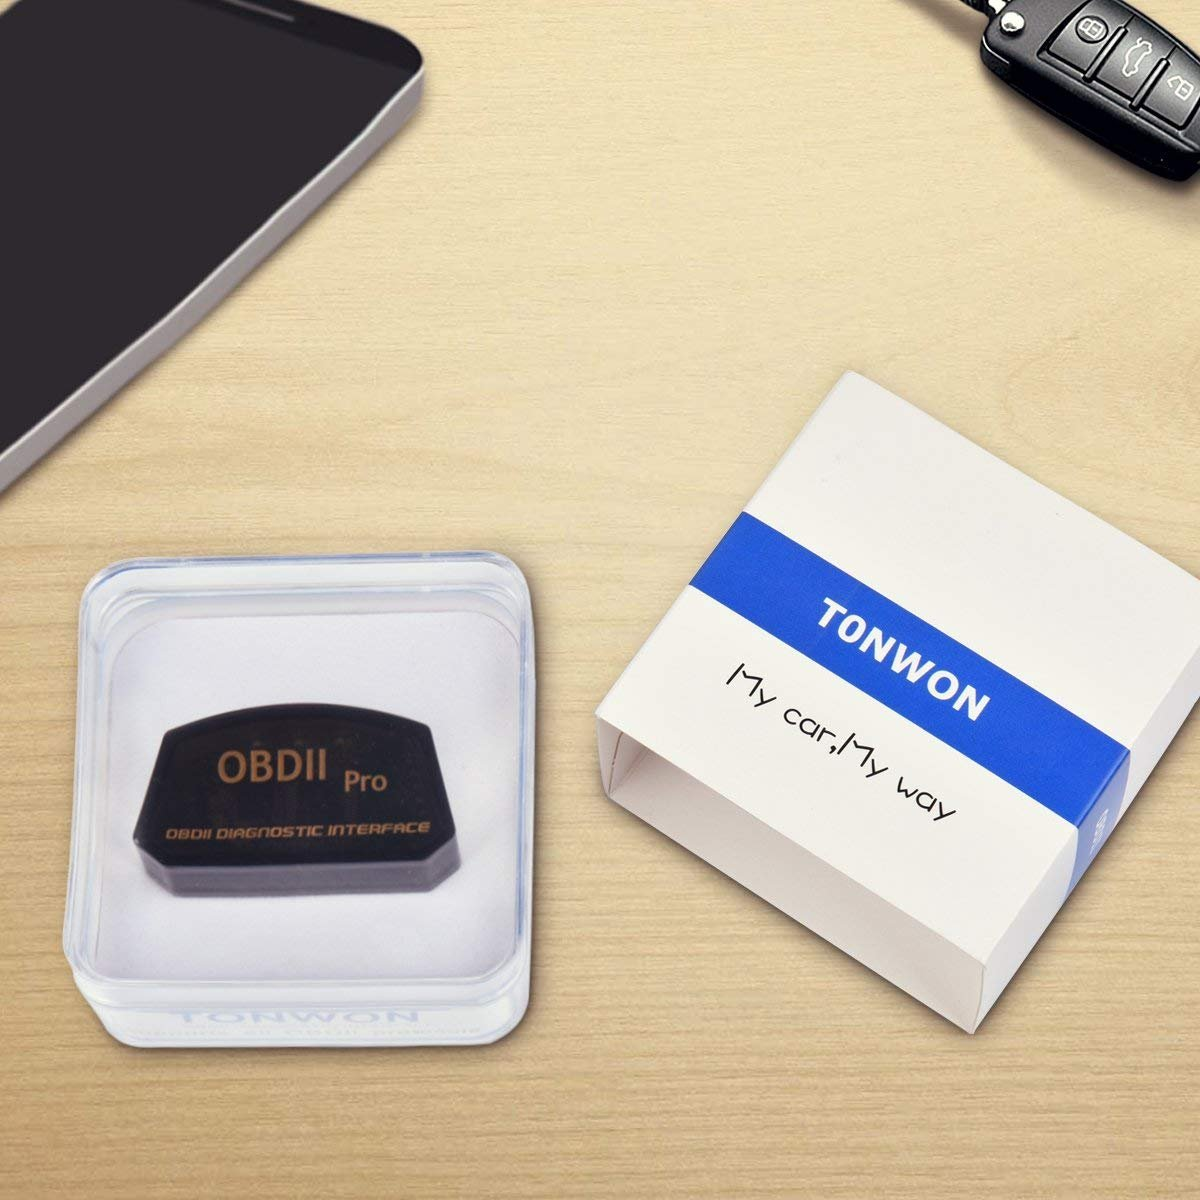 TONWON Pro Wi-Fi OBD2 ELM327 Car Fault Code Reader for iOS and Android